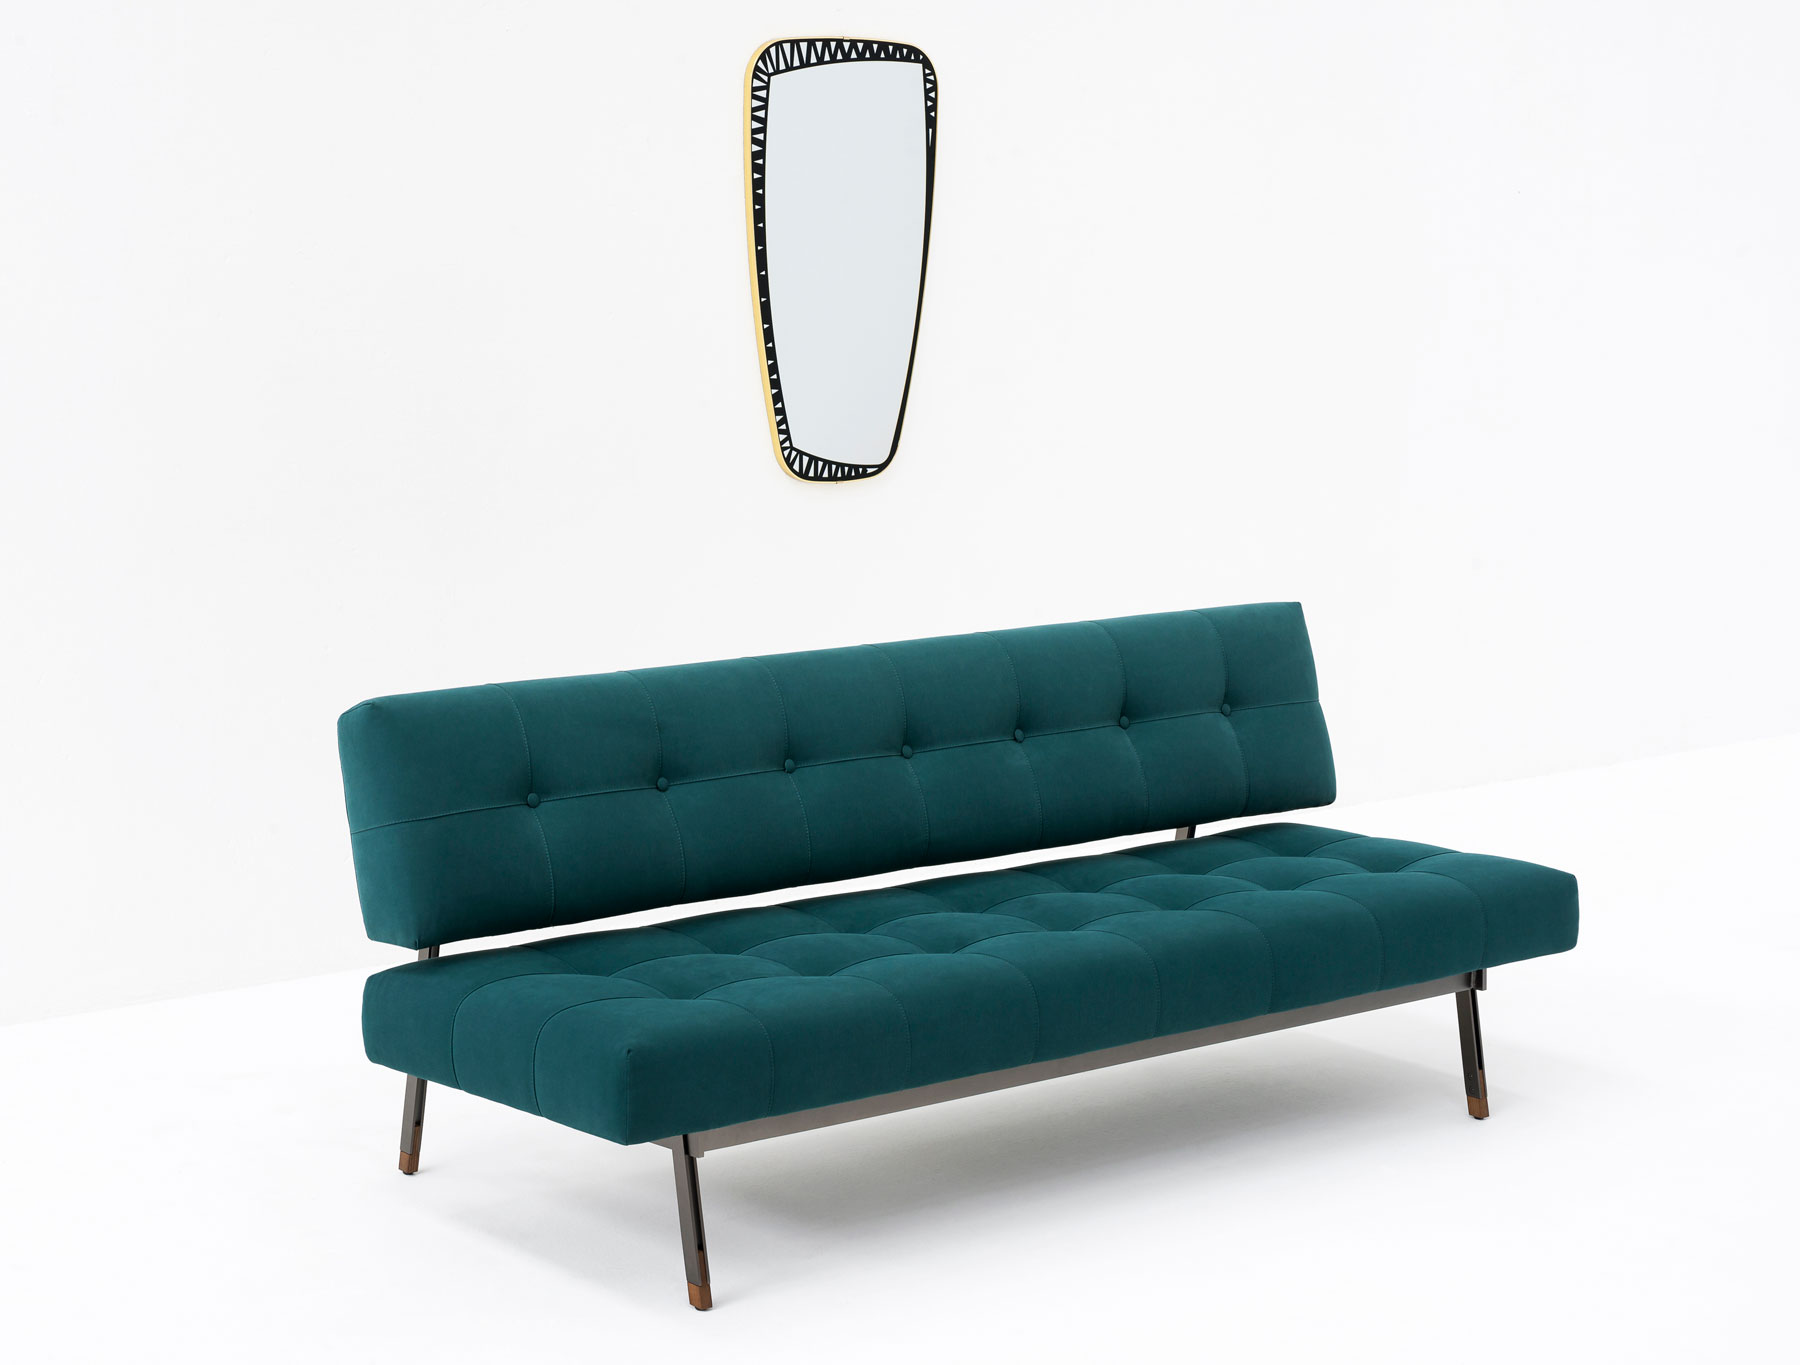 Tufted Sofa  Milantrace Tacchini New Collection Anteprima at Salone Del Mobile Yellowtrace